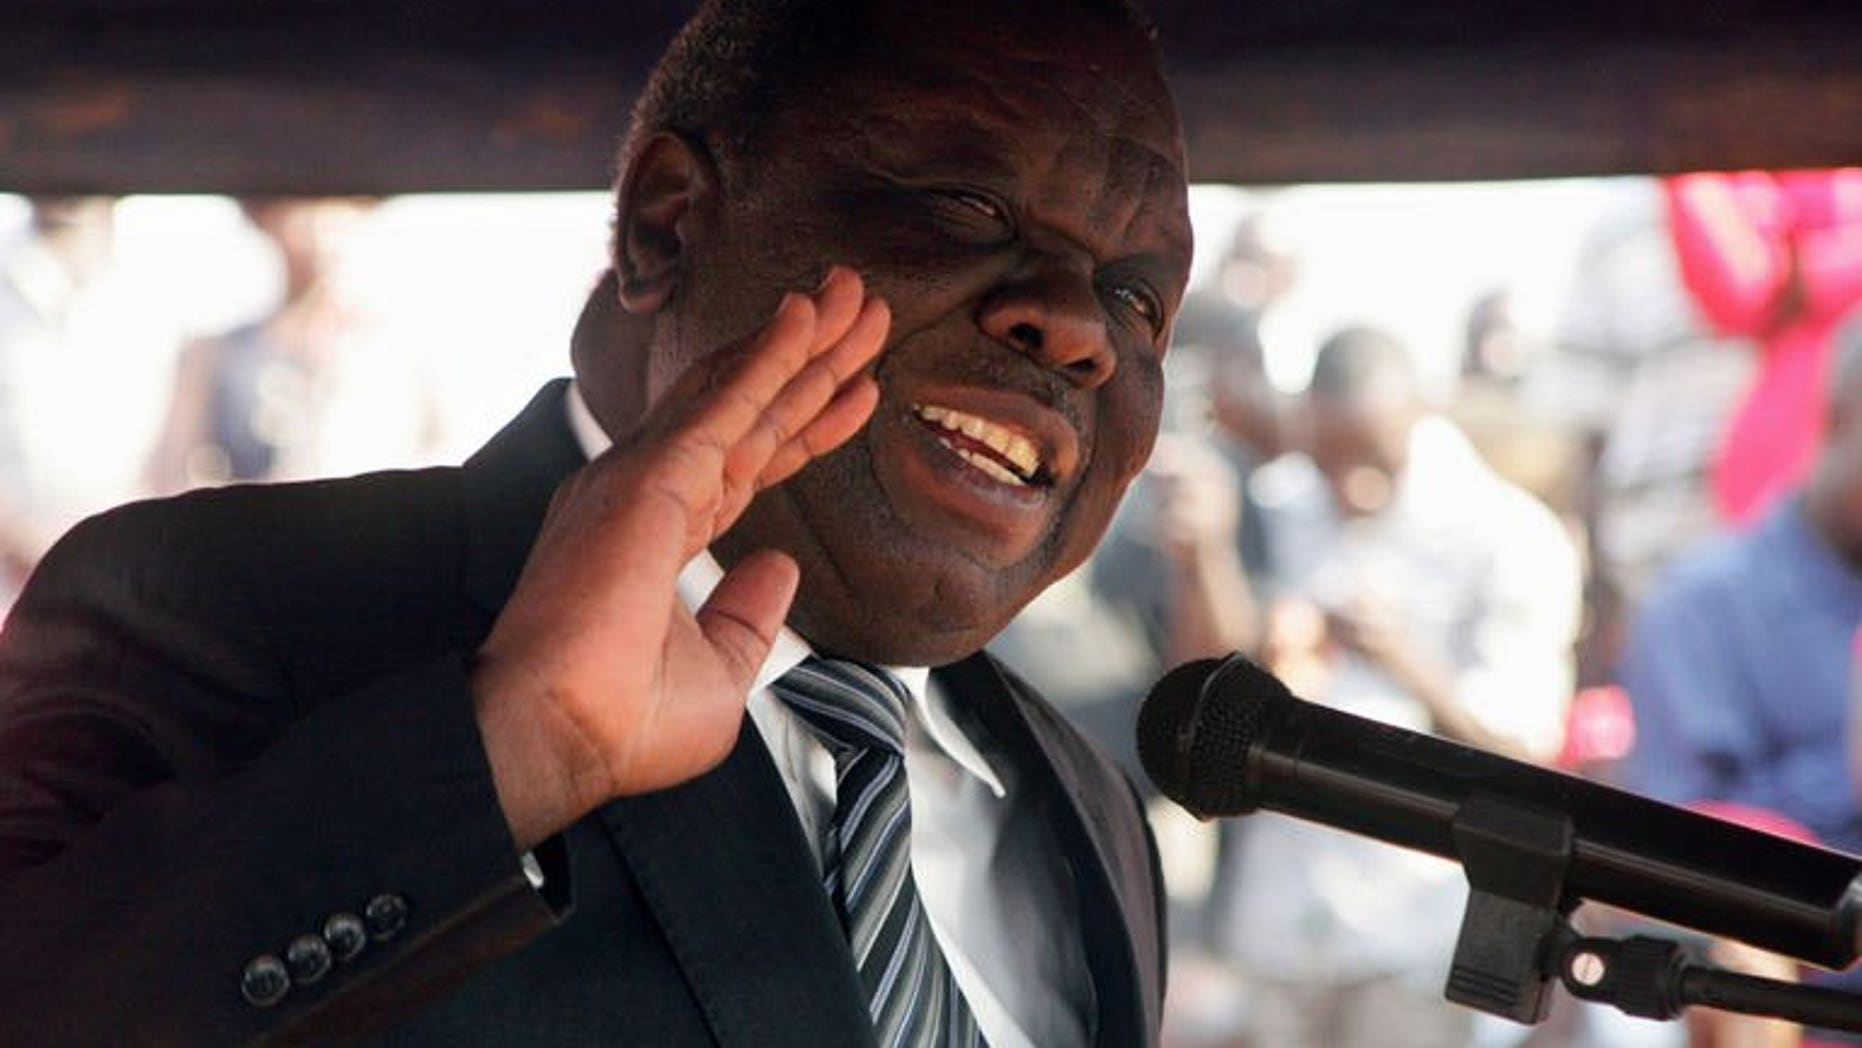 Movement for Democratic Change (MDC) Zimbabwe opposition leader, Morgan Tsvangirai, addresses mourners during the burial of Rebecca Mafikeni, a party activist of the MDC on August 14, 2013 in Harare. Tsvangirai on Friday withdrew a legal challenge against the outcome of last month's disputed election, his MDC party said, claiming the legal process would not be fair.